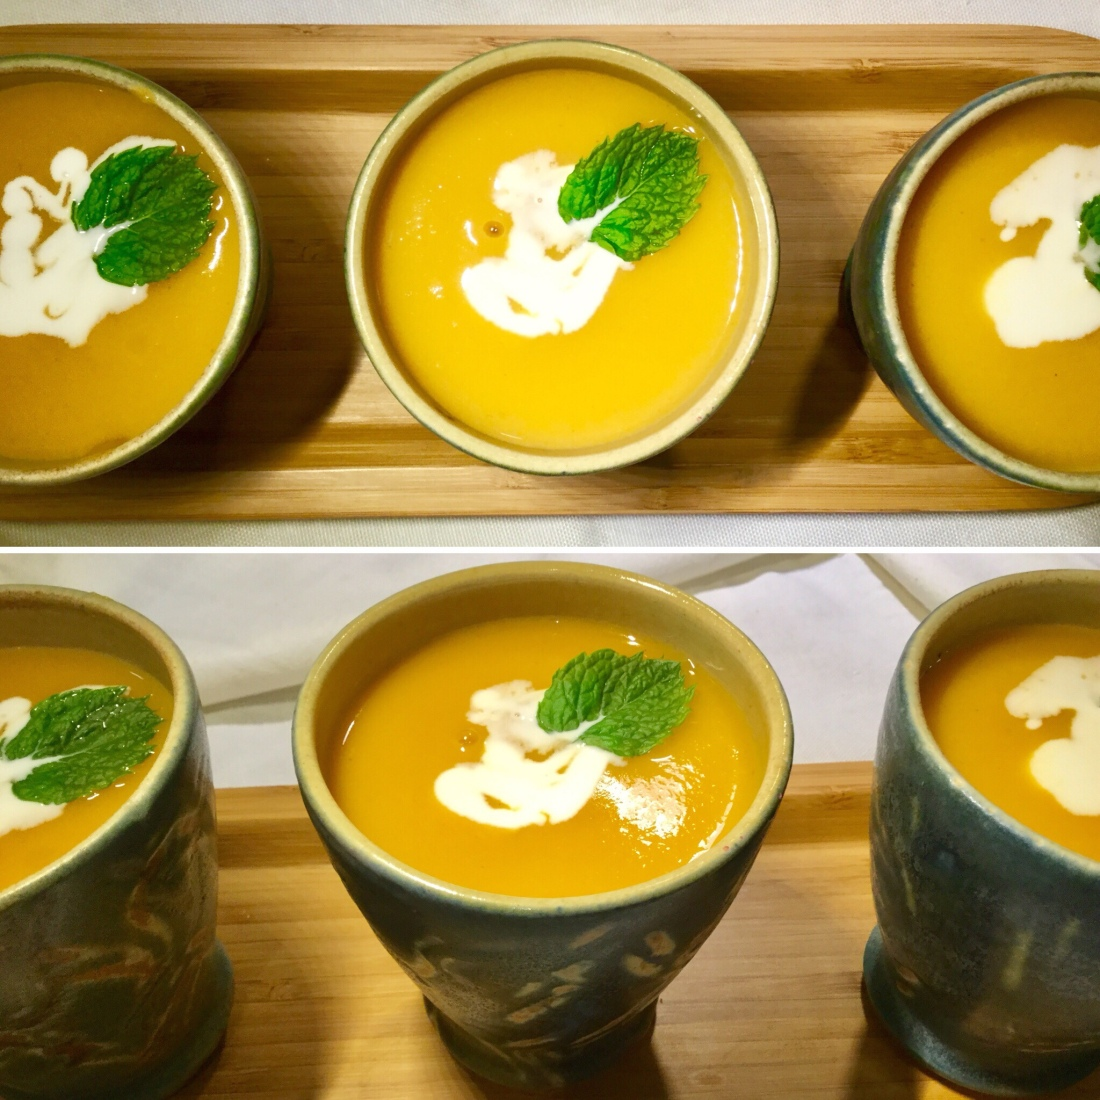 Sweet Potato and Pear Soup served in beakers